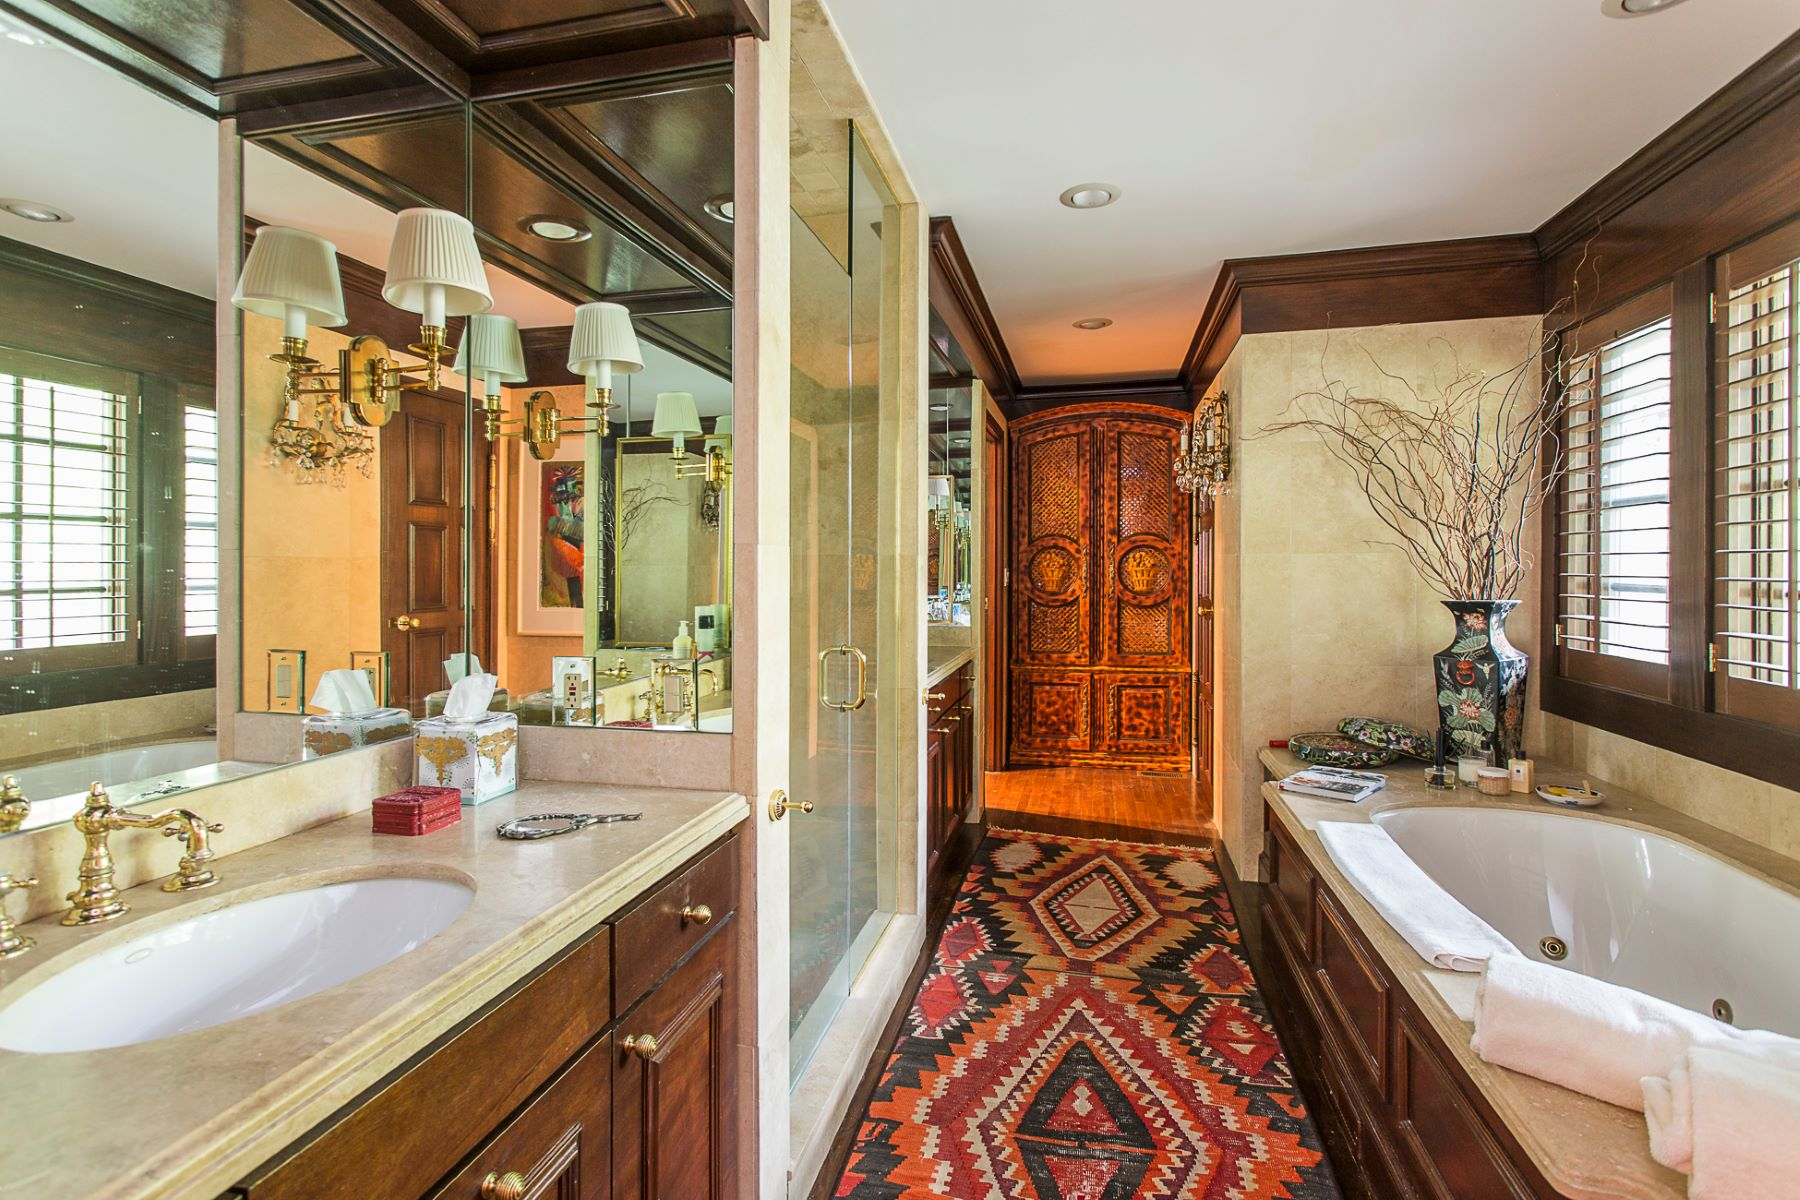 Additional photo for property listing at Storied 1920 Villa Renovated By Bob Bennett 1 Battle Road, Princeton, New Jersey 08540 United States